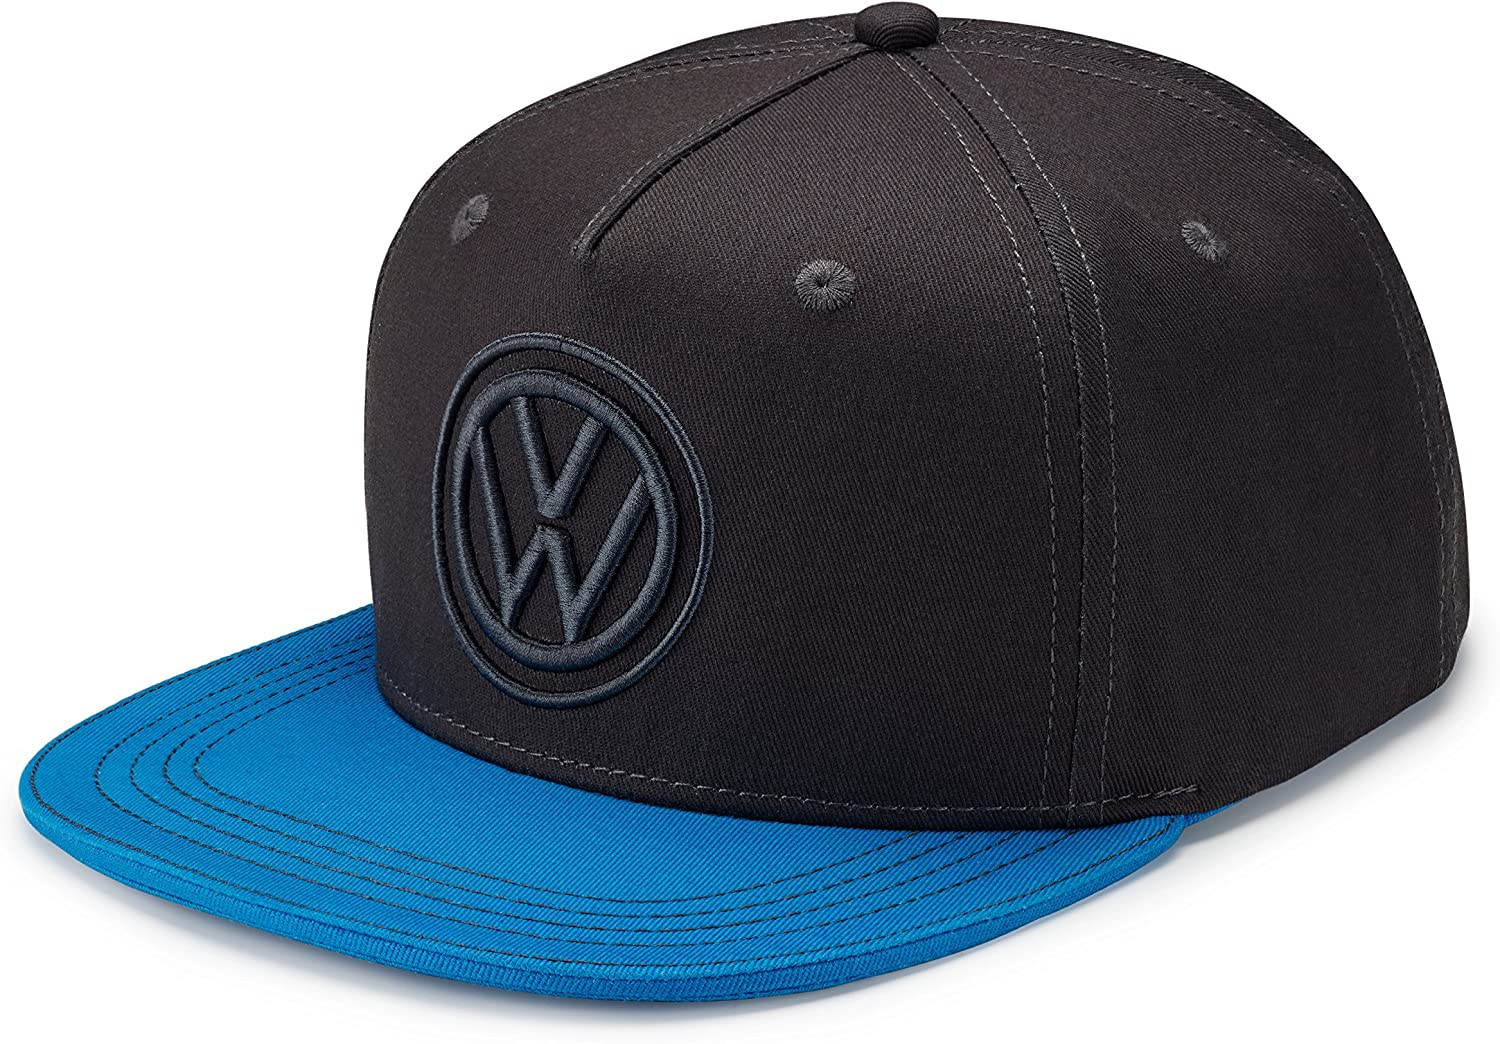 Black Adjustable size Volkswagen R // VW R Baseball Cap Unisex Hat 100/% cotton